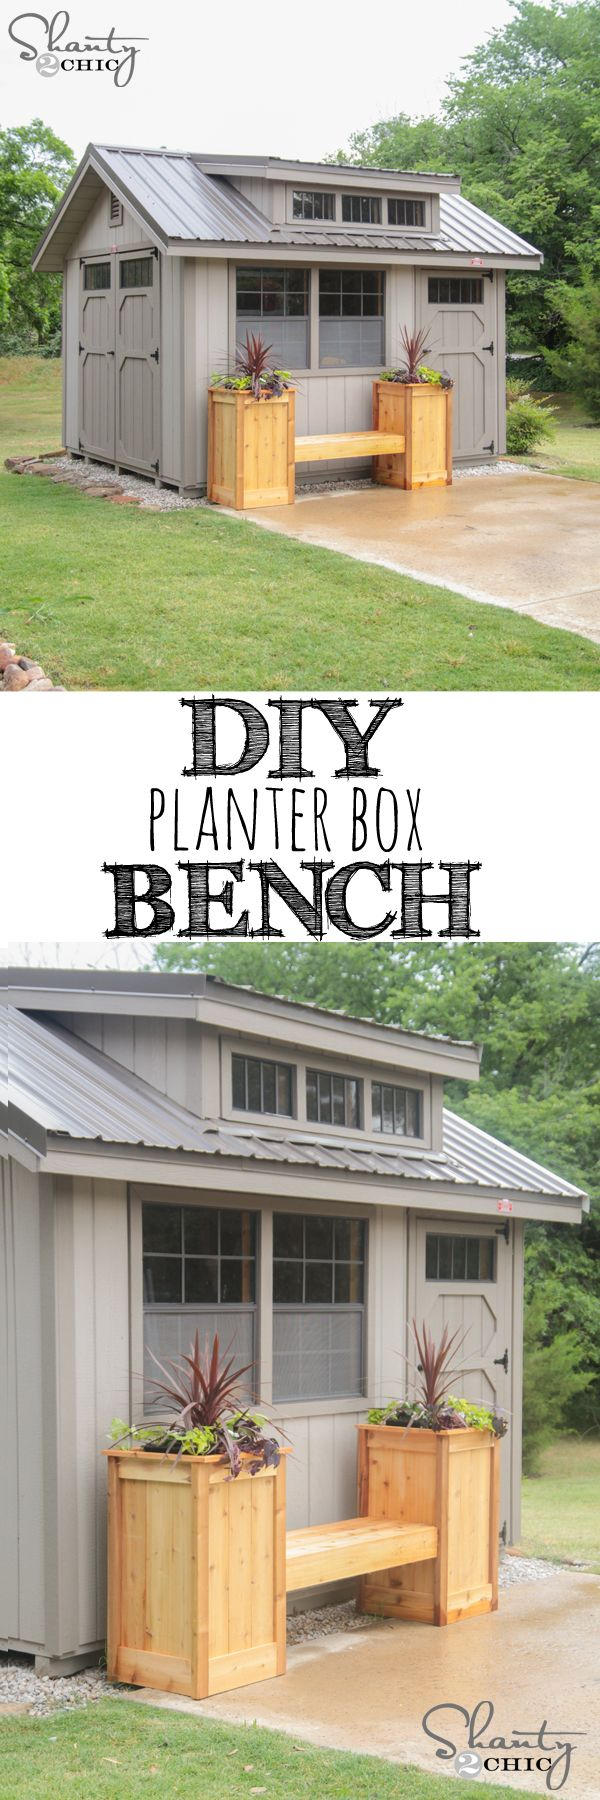 LOVE this DIY Cedar Planter Box Bench! Free plans too!! www.shanty-2-chic.com